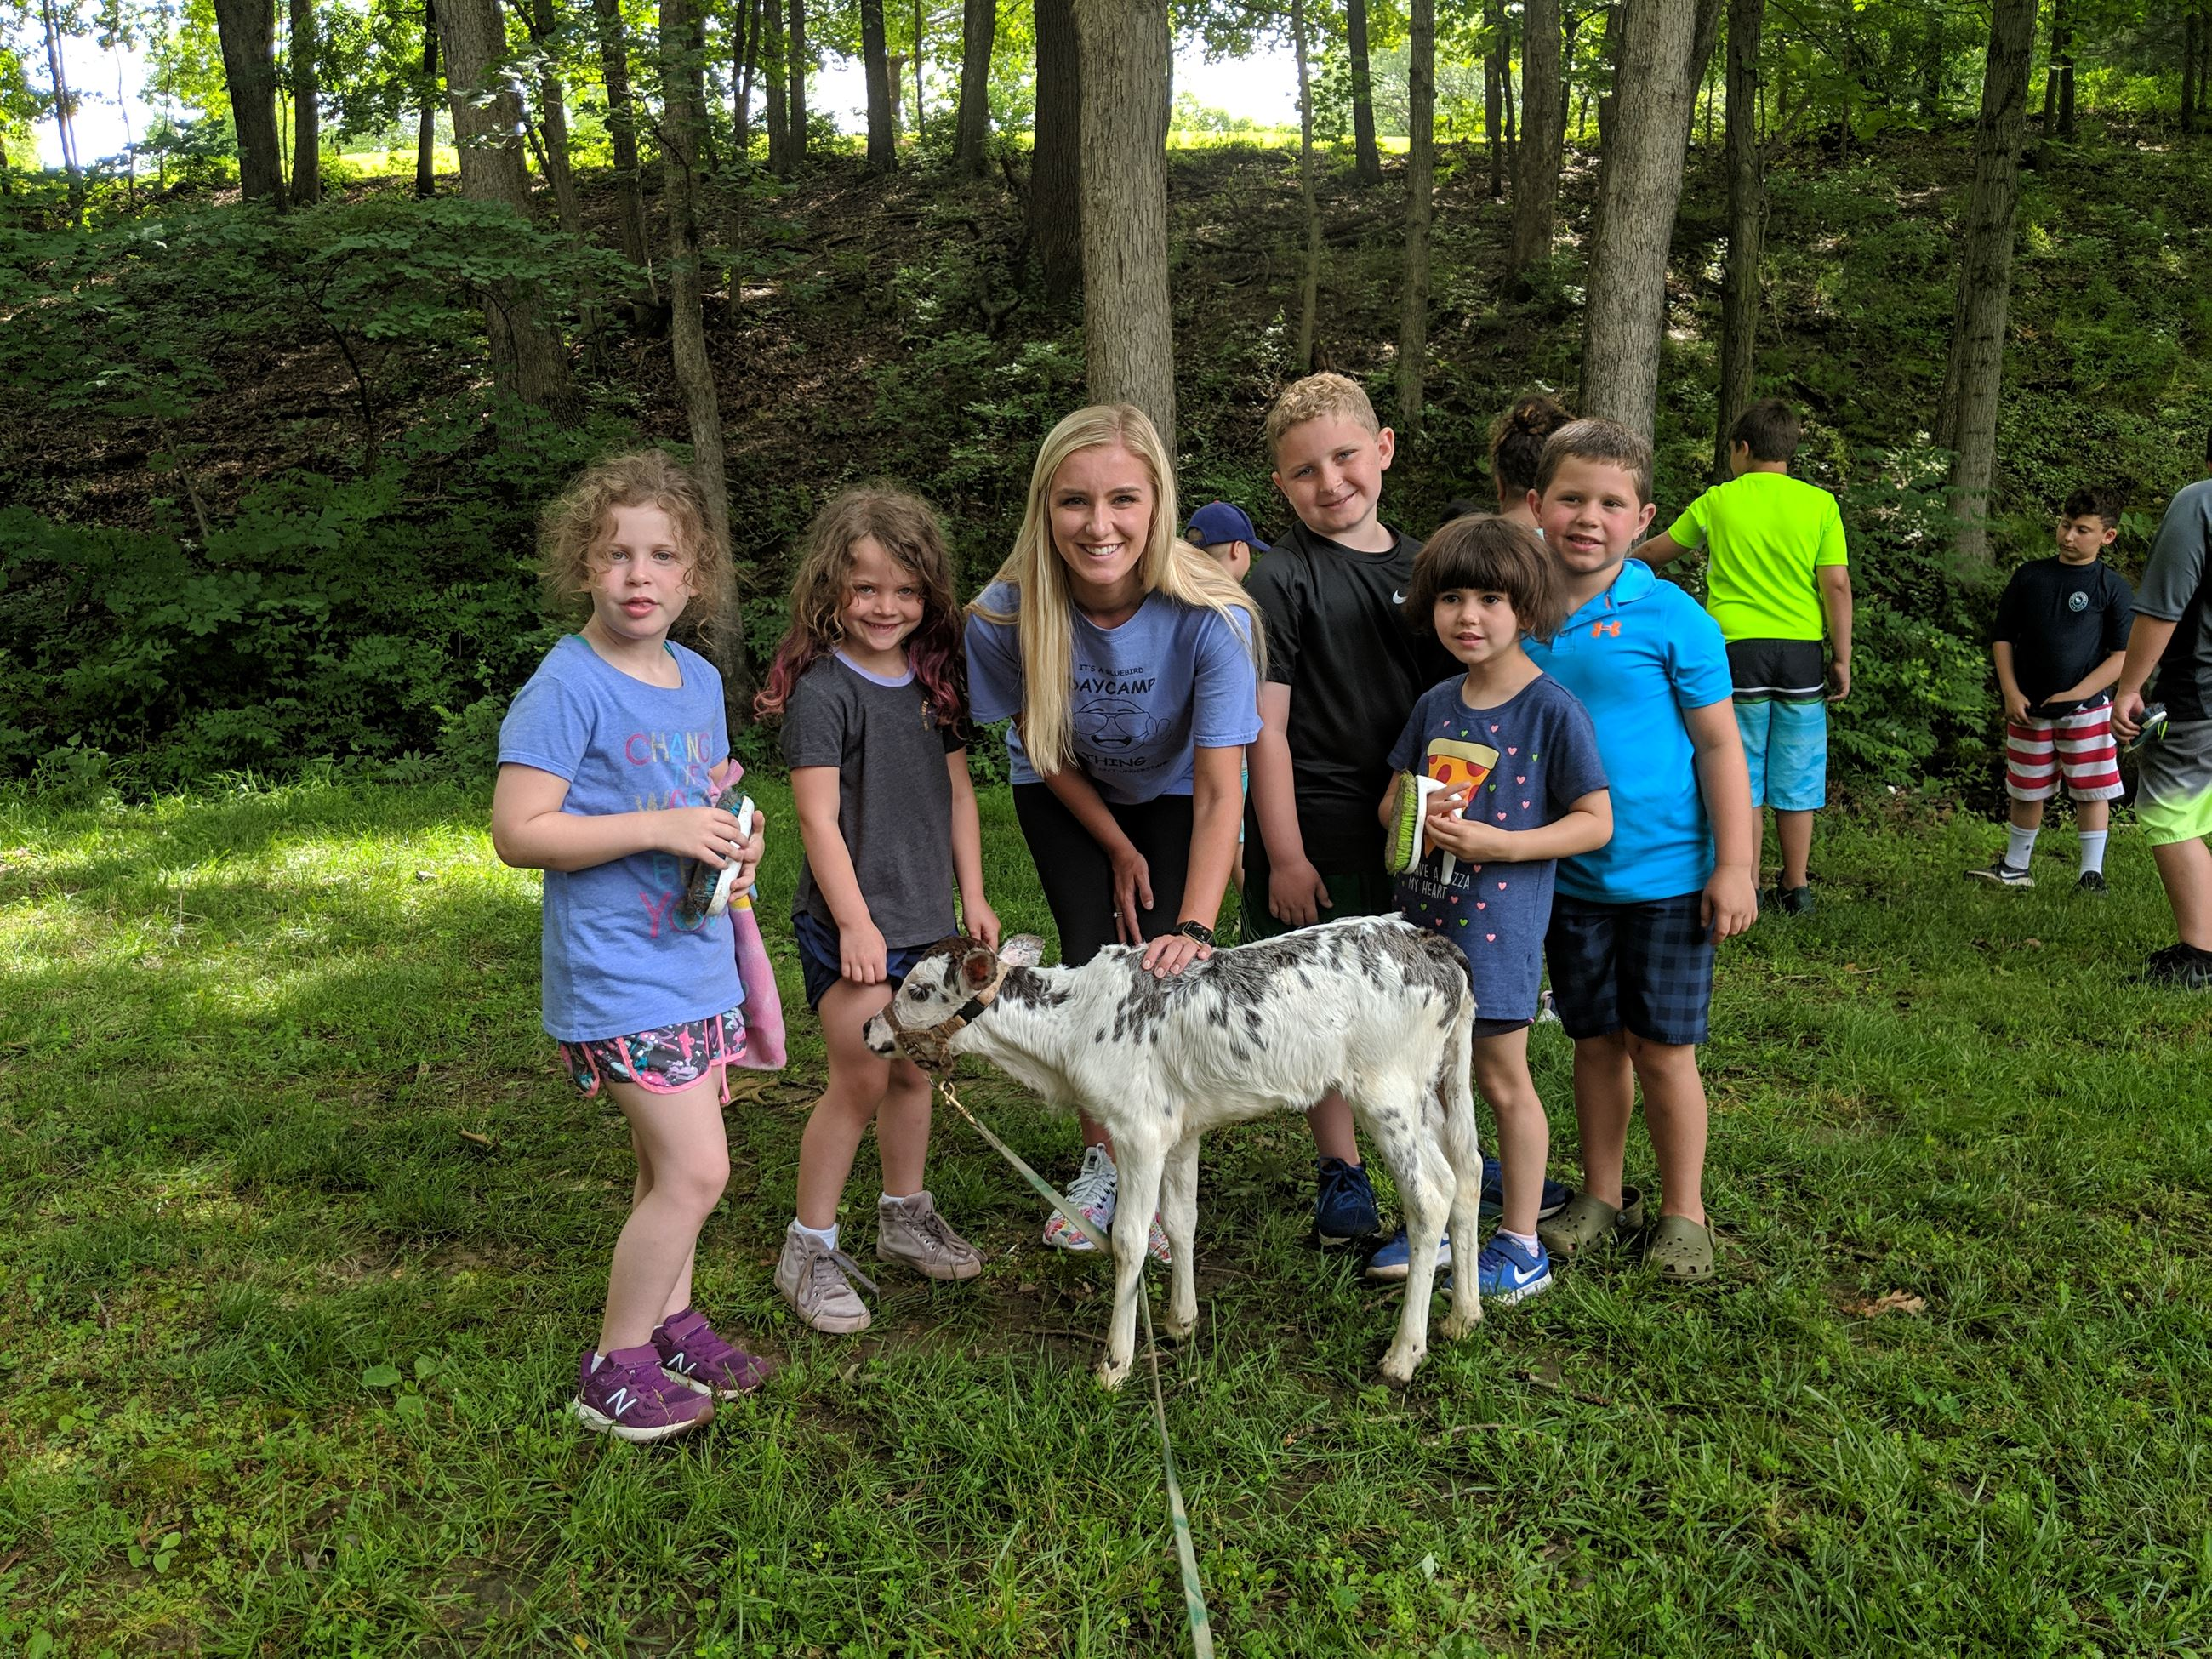 camp group with cow from petting zoo